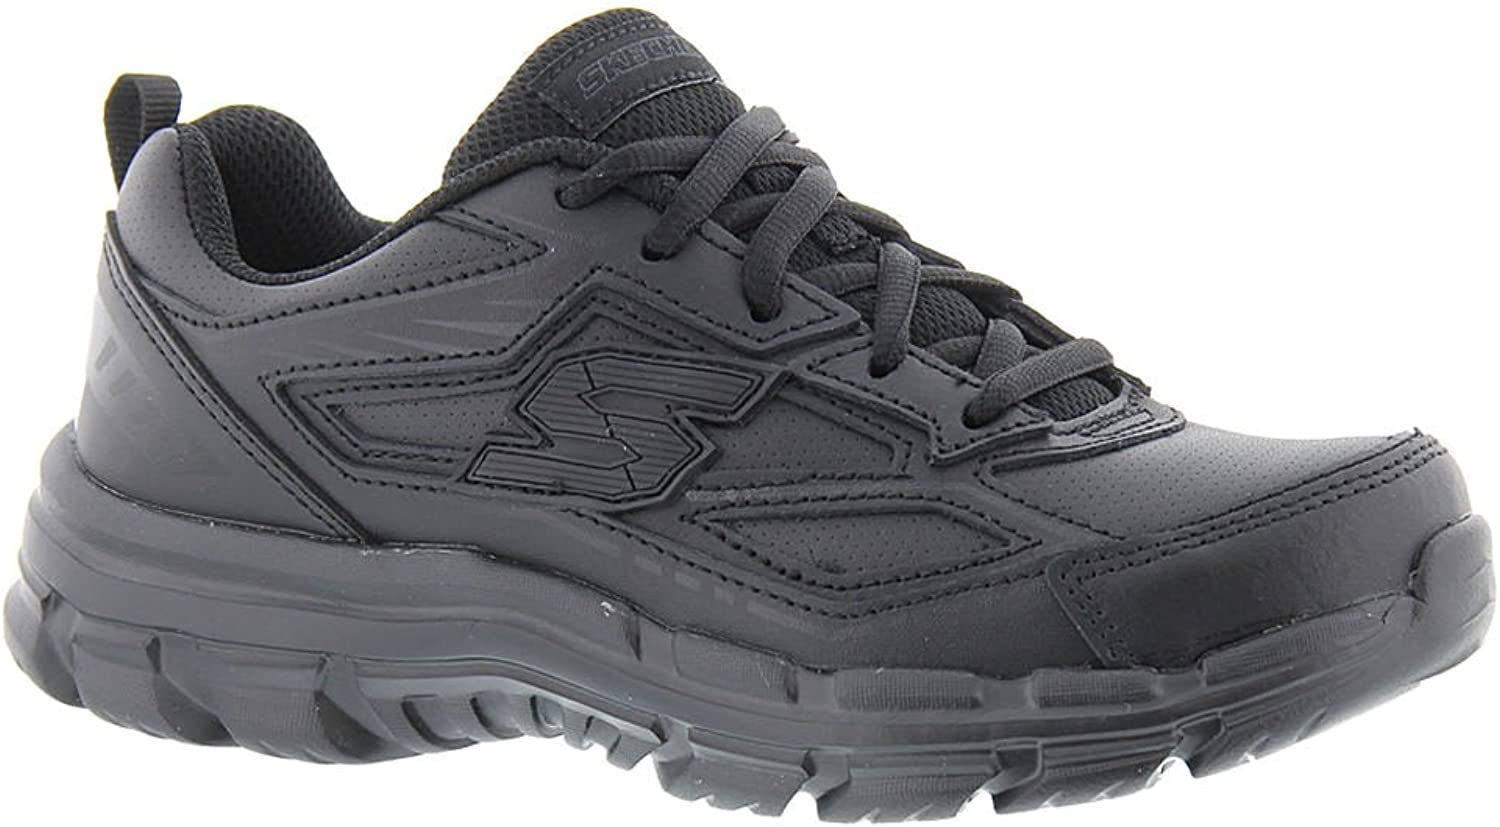 Skechers Nitrate-Extra Credit Boys' Toddler-Youth Sneaker